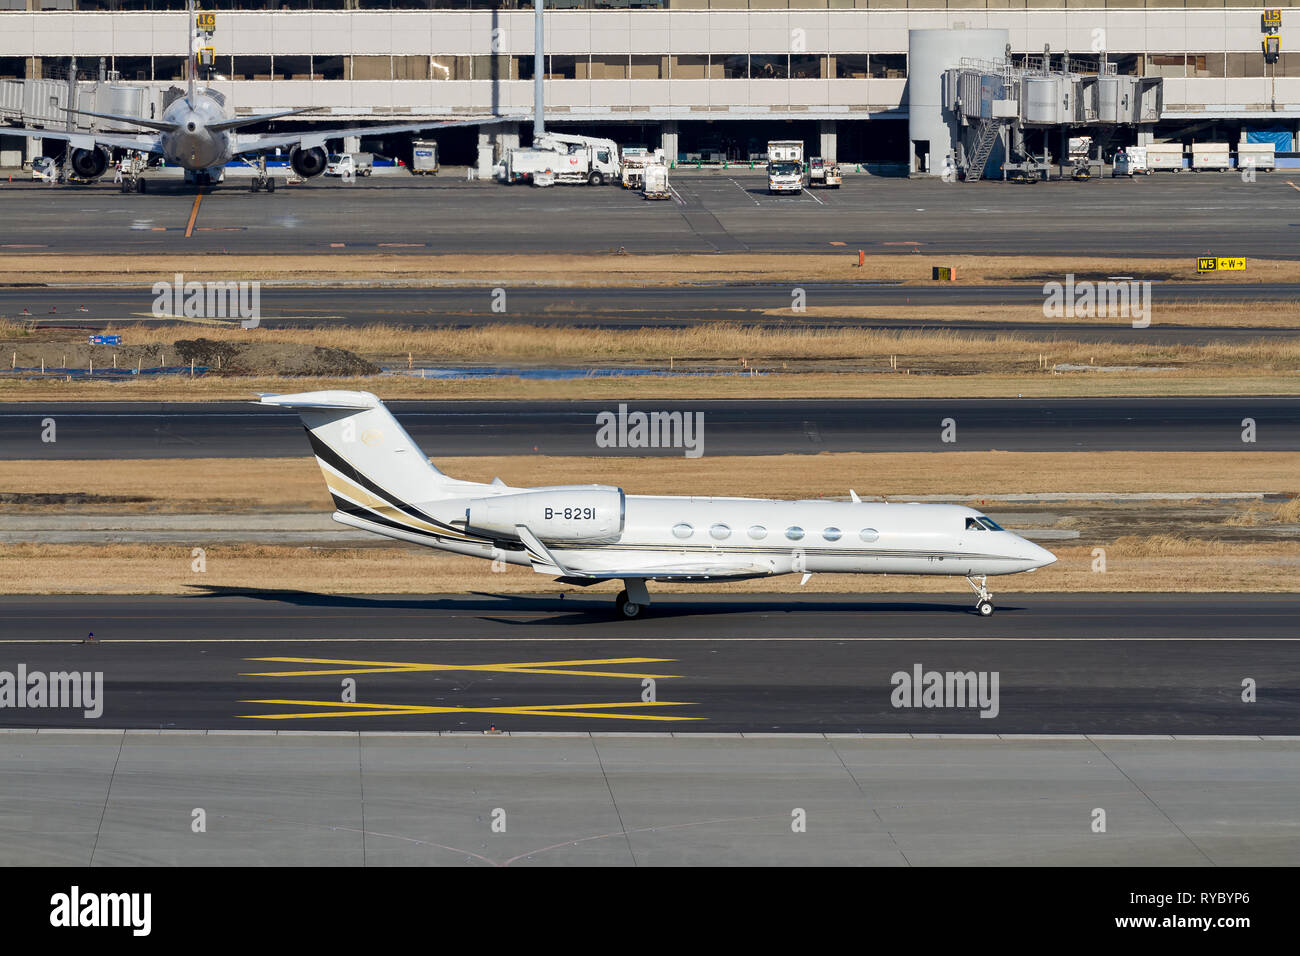 A Gulfstream G40 executive jet operated by Deer Jet at Haneda International Airport, Tokyo, Japan. Friday February 1st 2019 - Stock Image